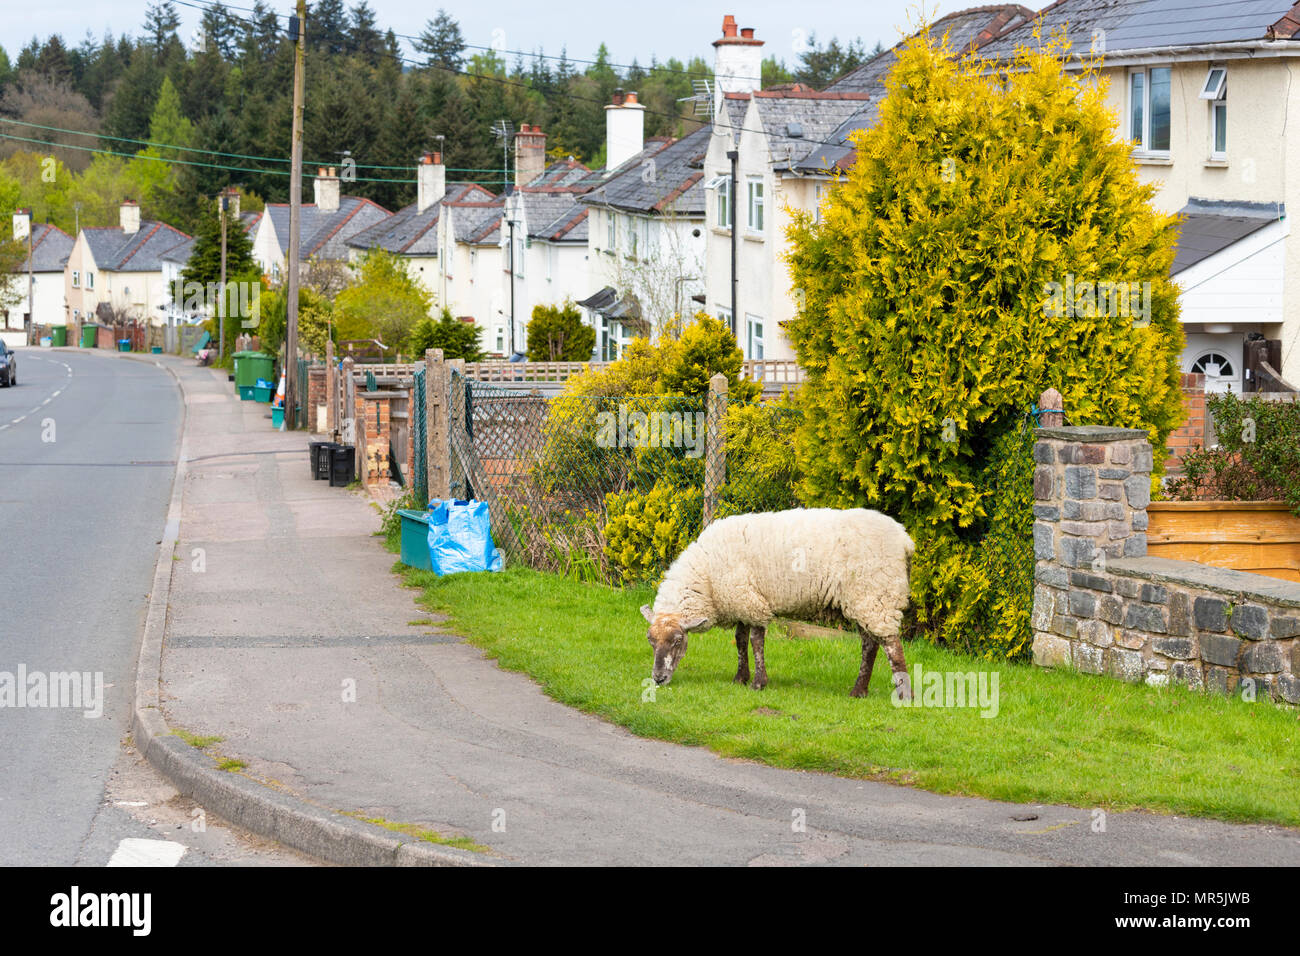 Free roaming sheep in the Forest of Dean at Bream, Gloucestershire UK - Stock Image